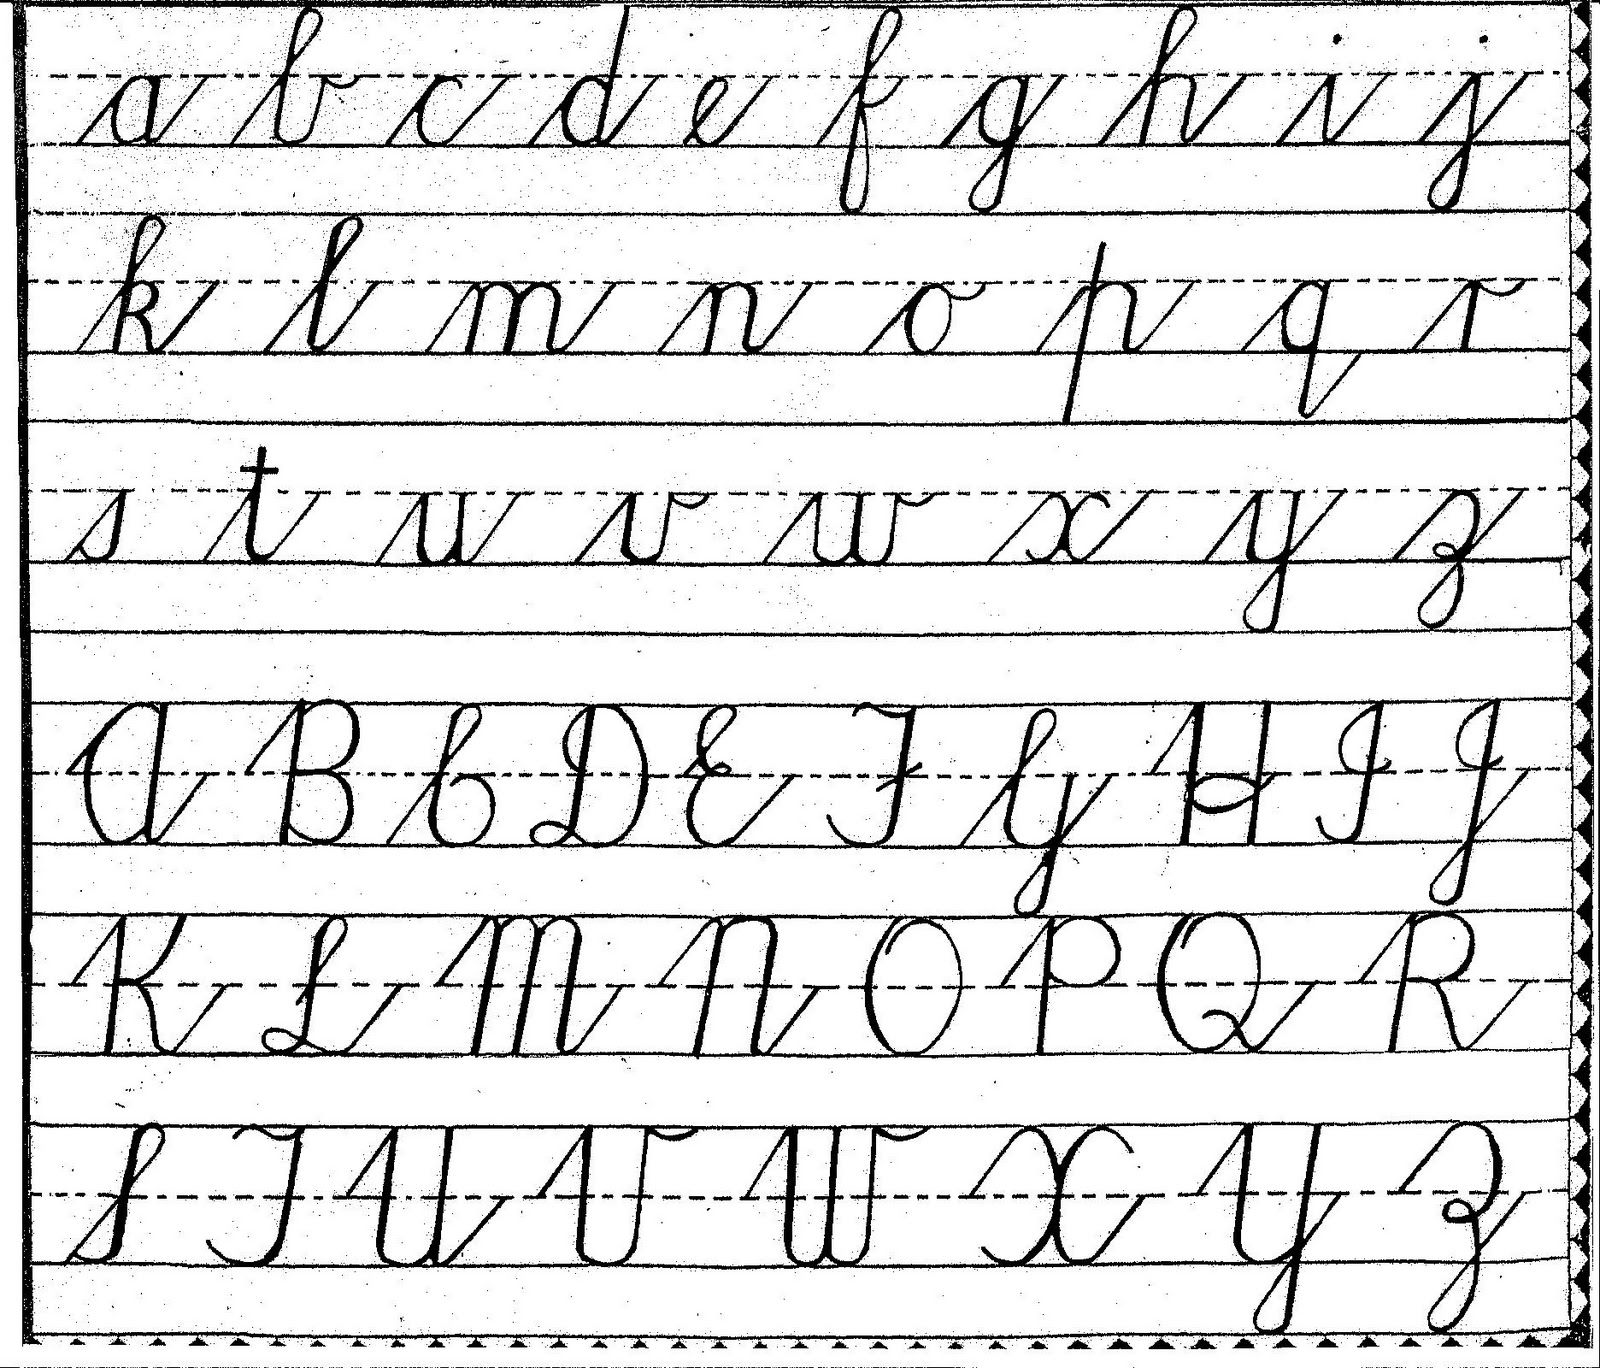 Worksheets English Cursive Writing Letter collection of free cursive handwriting from all over the world world